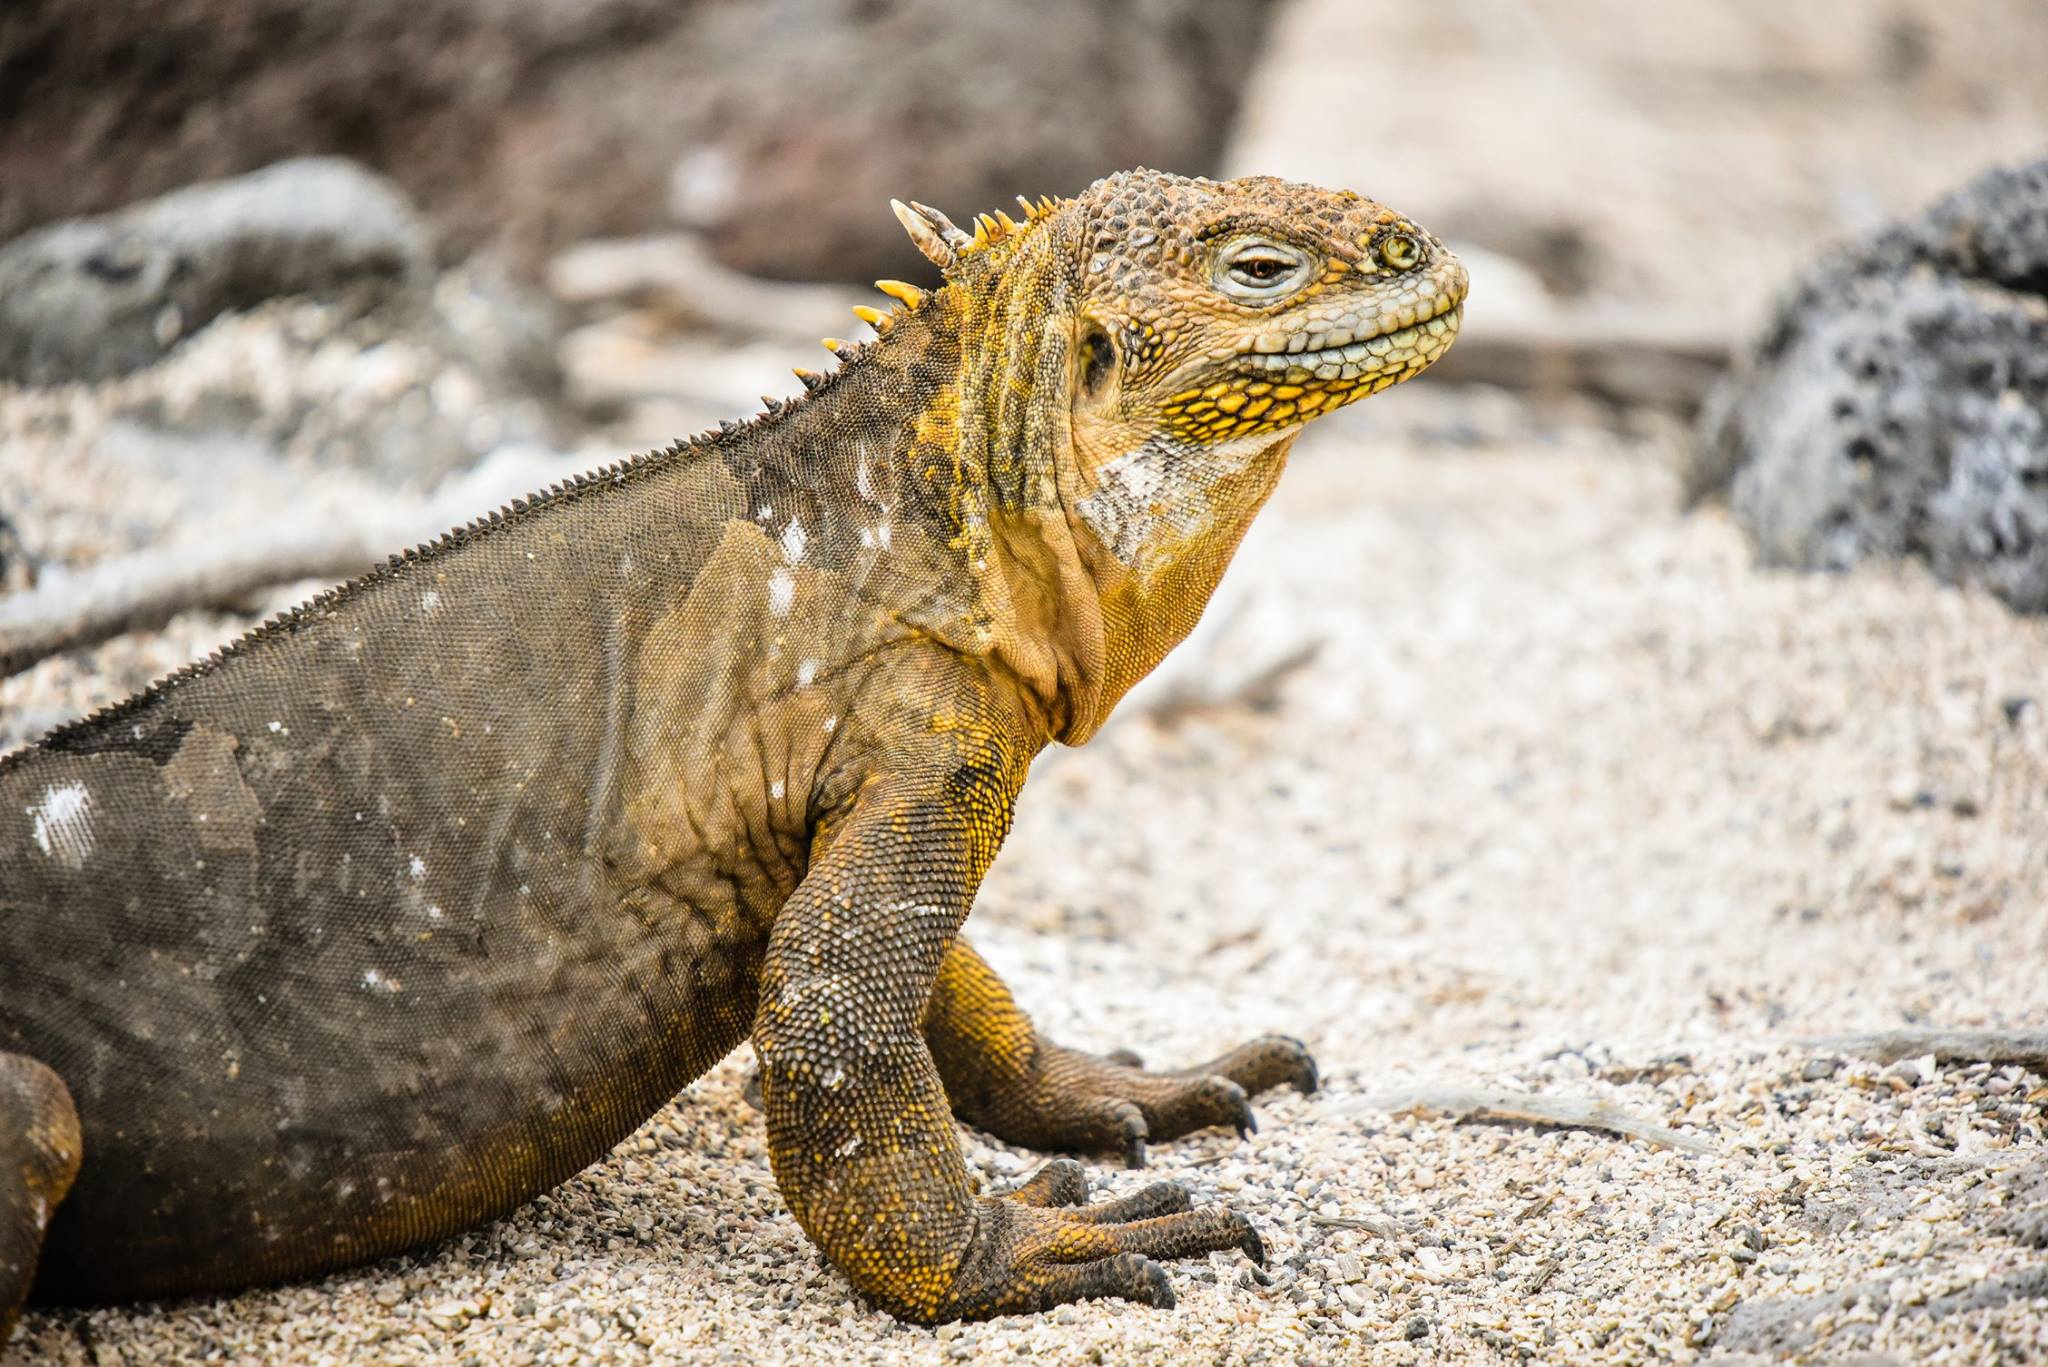 Silversea Cruises will recommence cruises among the Galápagos Islands with new itineraries aboard its new ship Silver Origin.